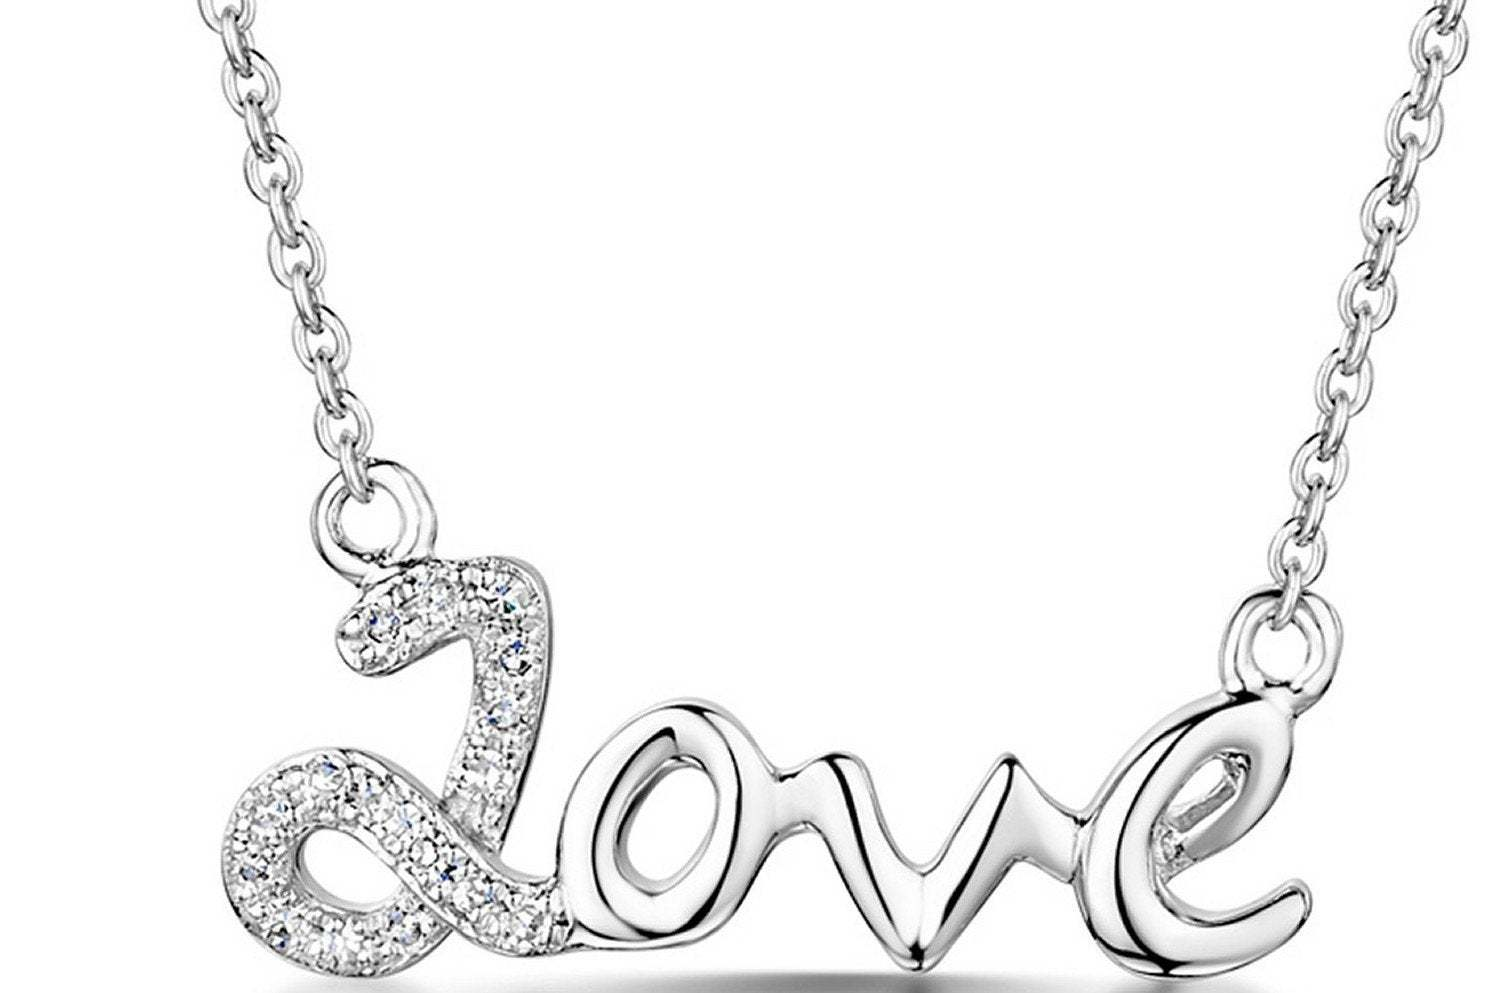 9K White Gold Diamond Love Necklace